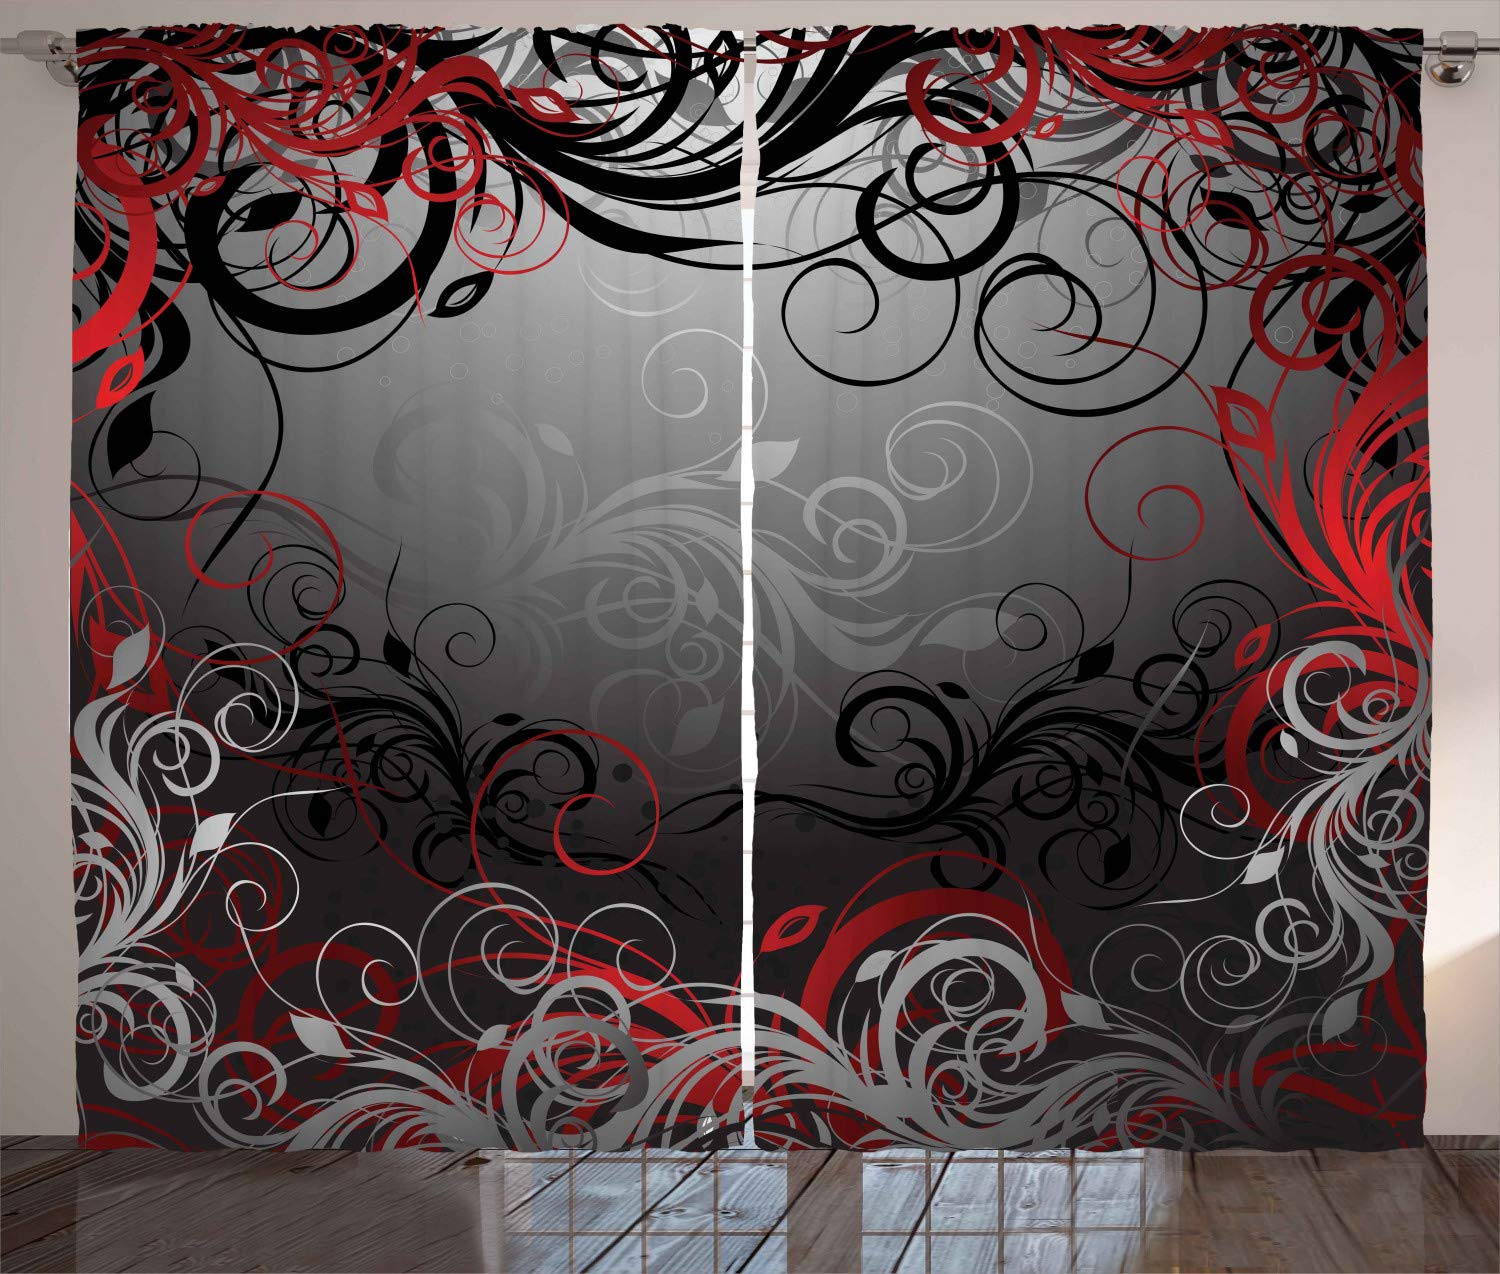 Charcoal Grey Pale Ruby p/_33490/_108x84 Living Room Bedroom Window Drapes 2 Panel Set 108 W X 84 L Inches Ambesonne Abstract Curtains Mystic Magical Forest Floral Swirls Leaves Nature Fading Ombre Effect